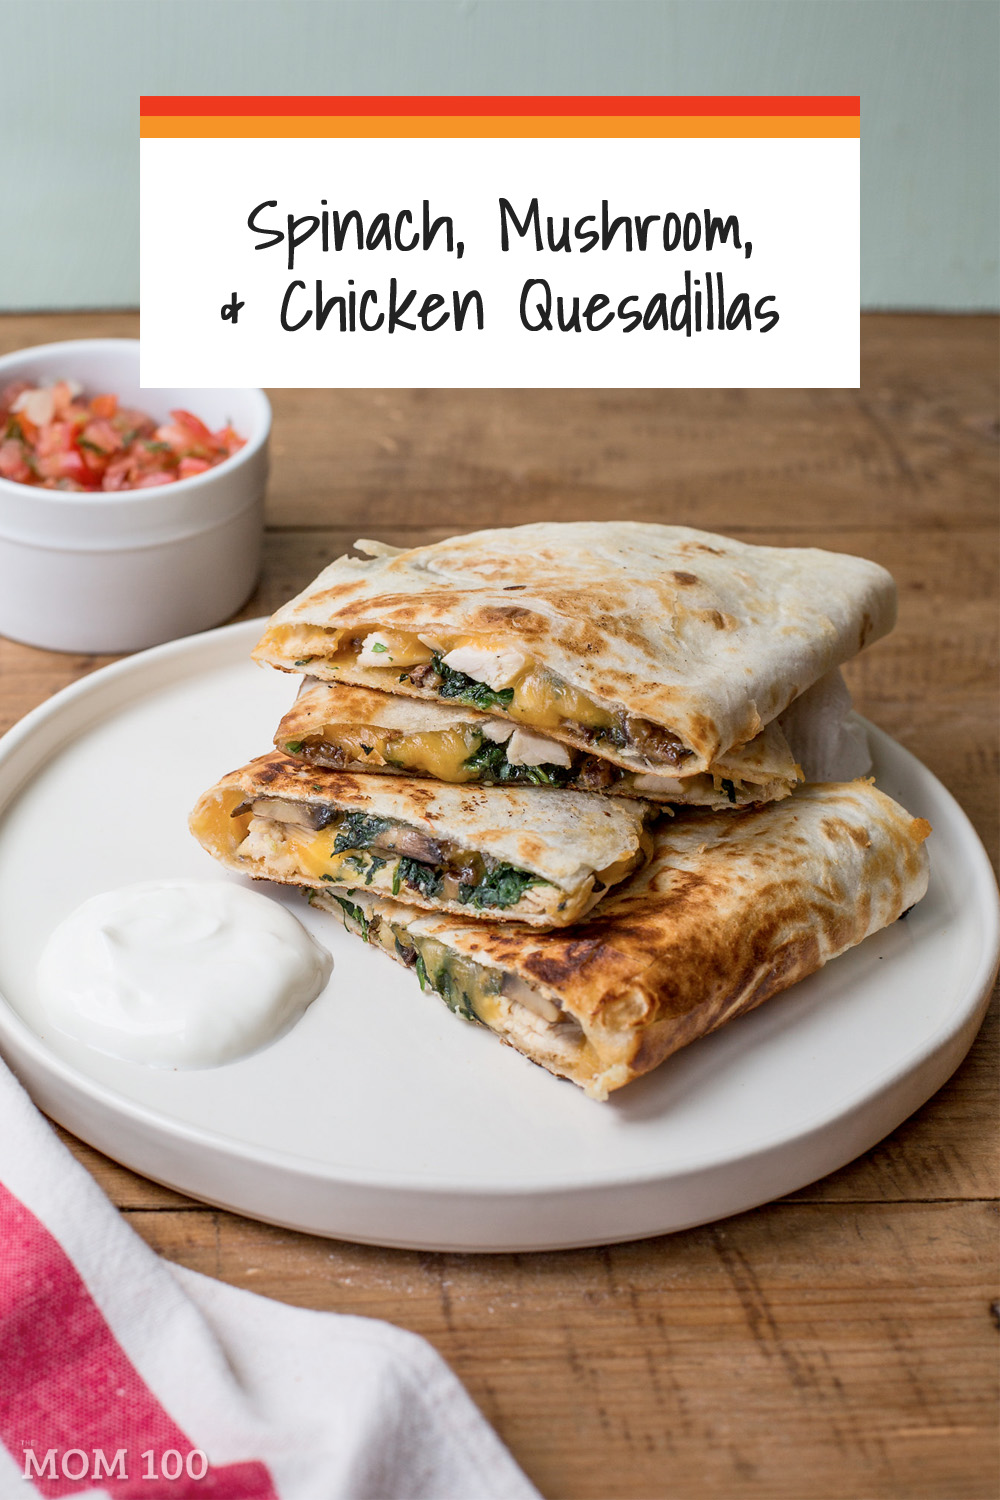 Spinach, Mushroom, and Chicken Quesadillas Recipe:  A substantial and delicious combo, an all-in-one-meal quesadilla.  Serve with salsa and sour cream.